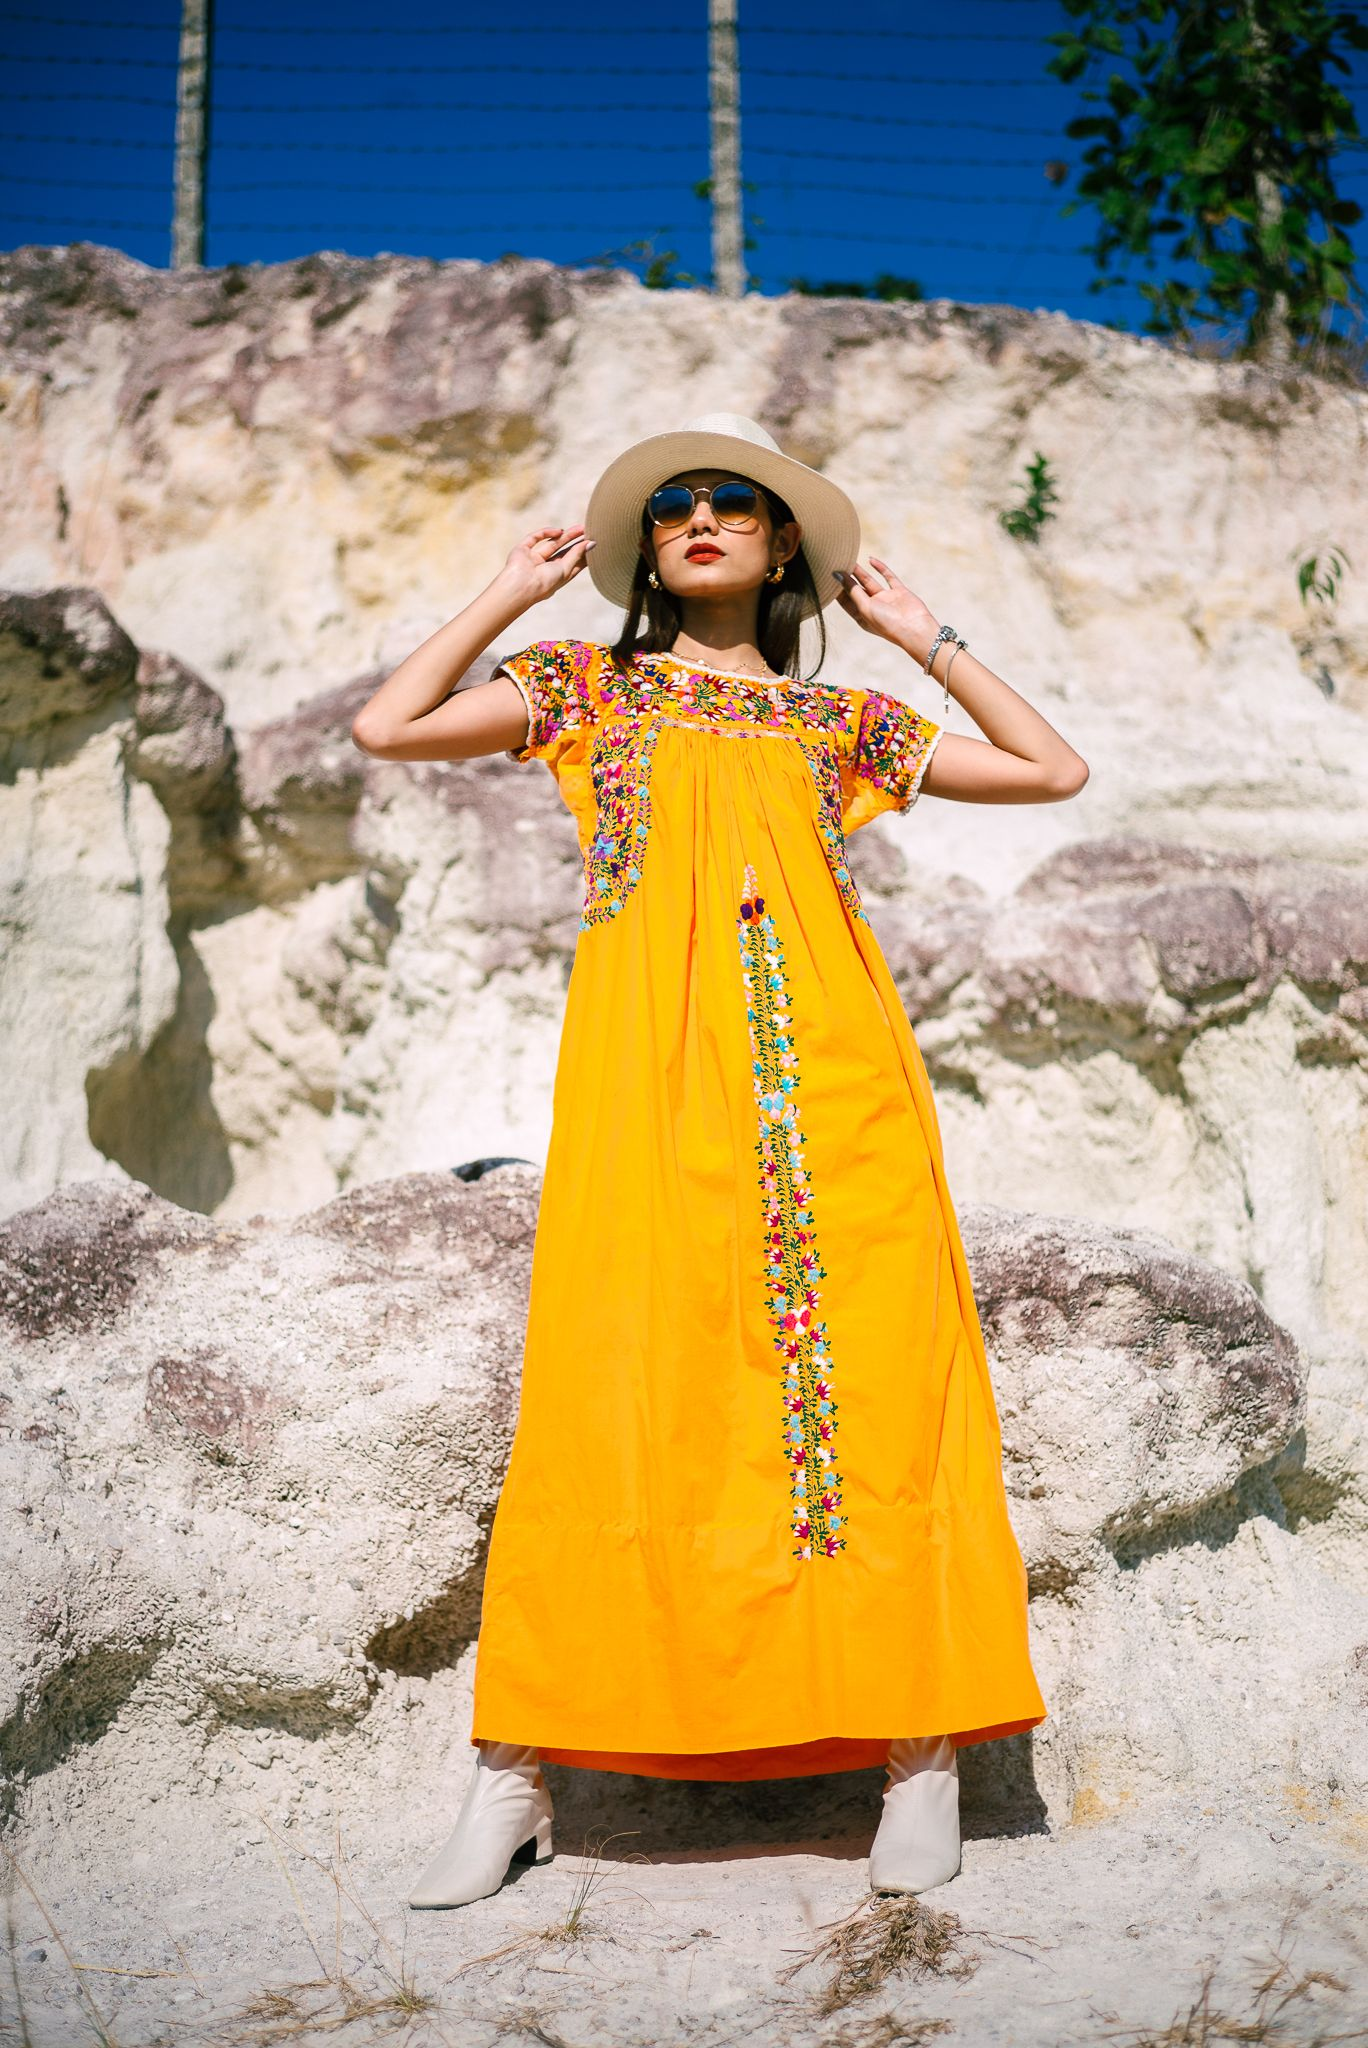 Vintage Oaxacan Maxi Dress Mexican Dress With Floral Embroidery Boho Orange Cotton Floral Fiesta Dress Mexican Dresses Maxi Dress Dresses [ 2048 x 1368 Pixel ]